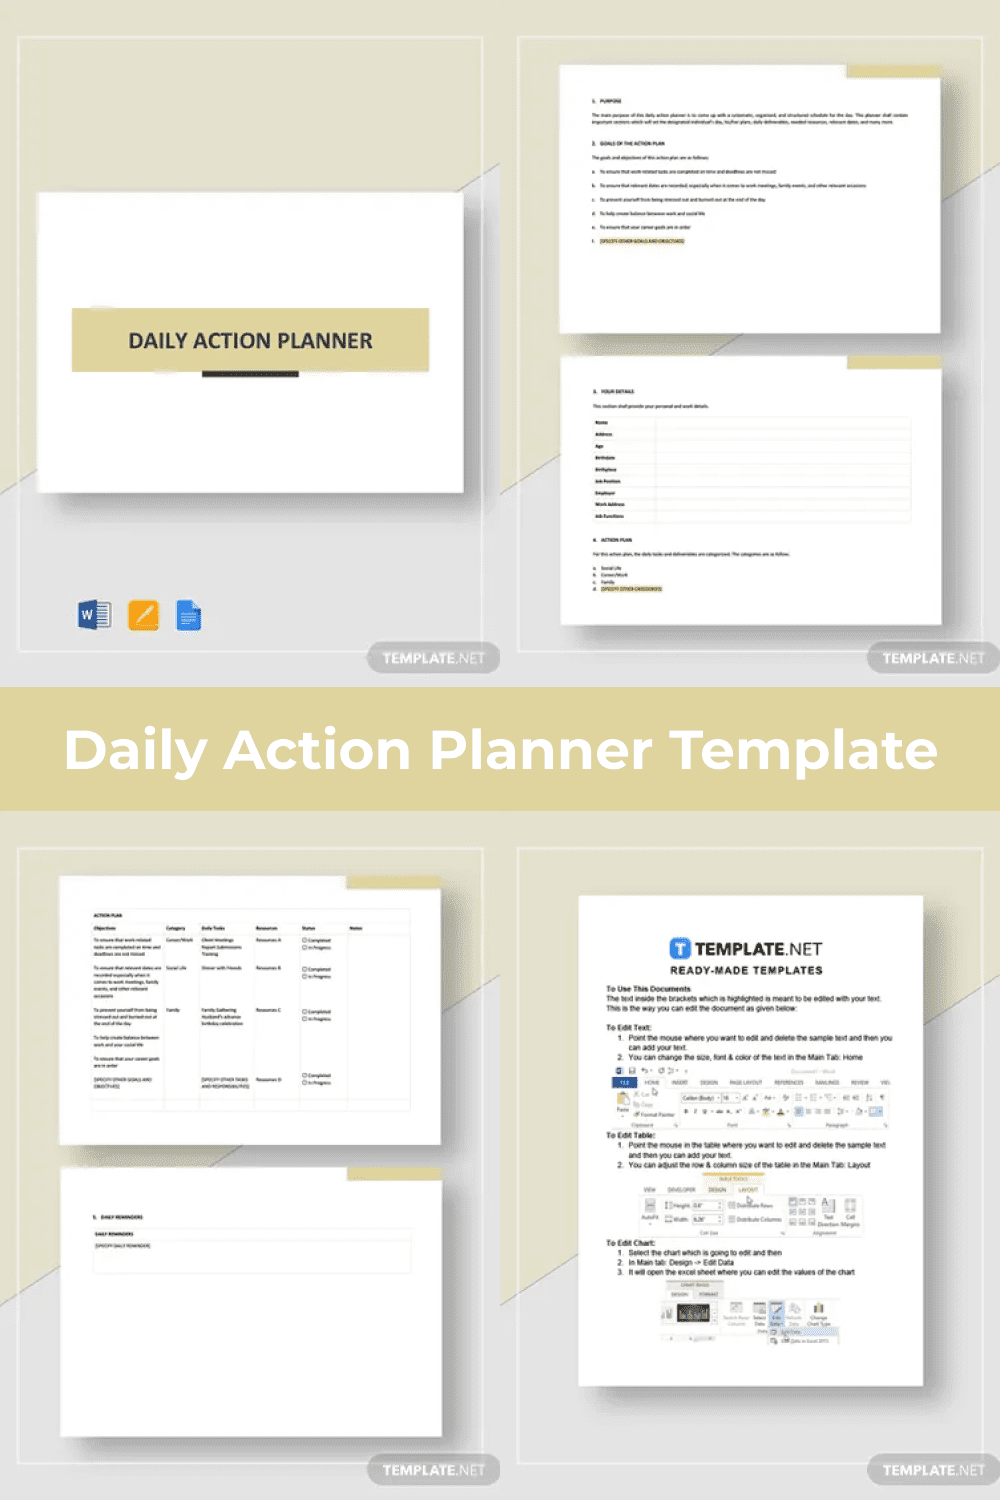 Detailed daily activity planner.